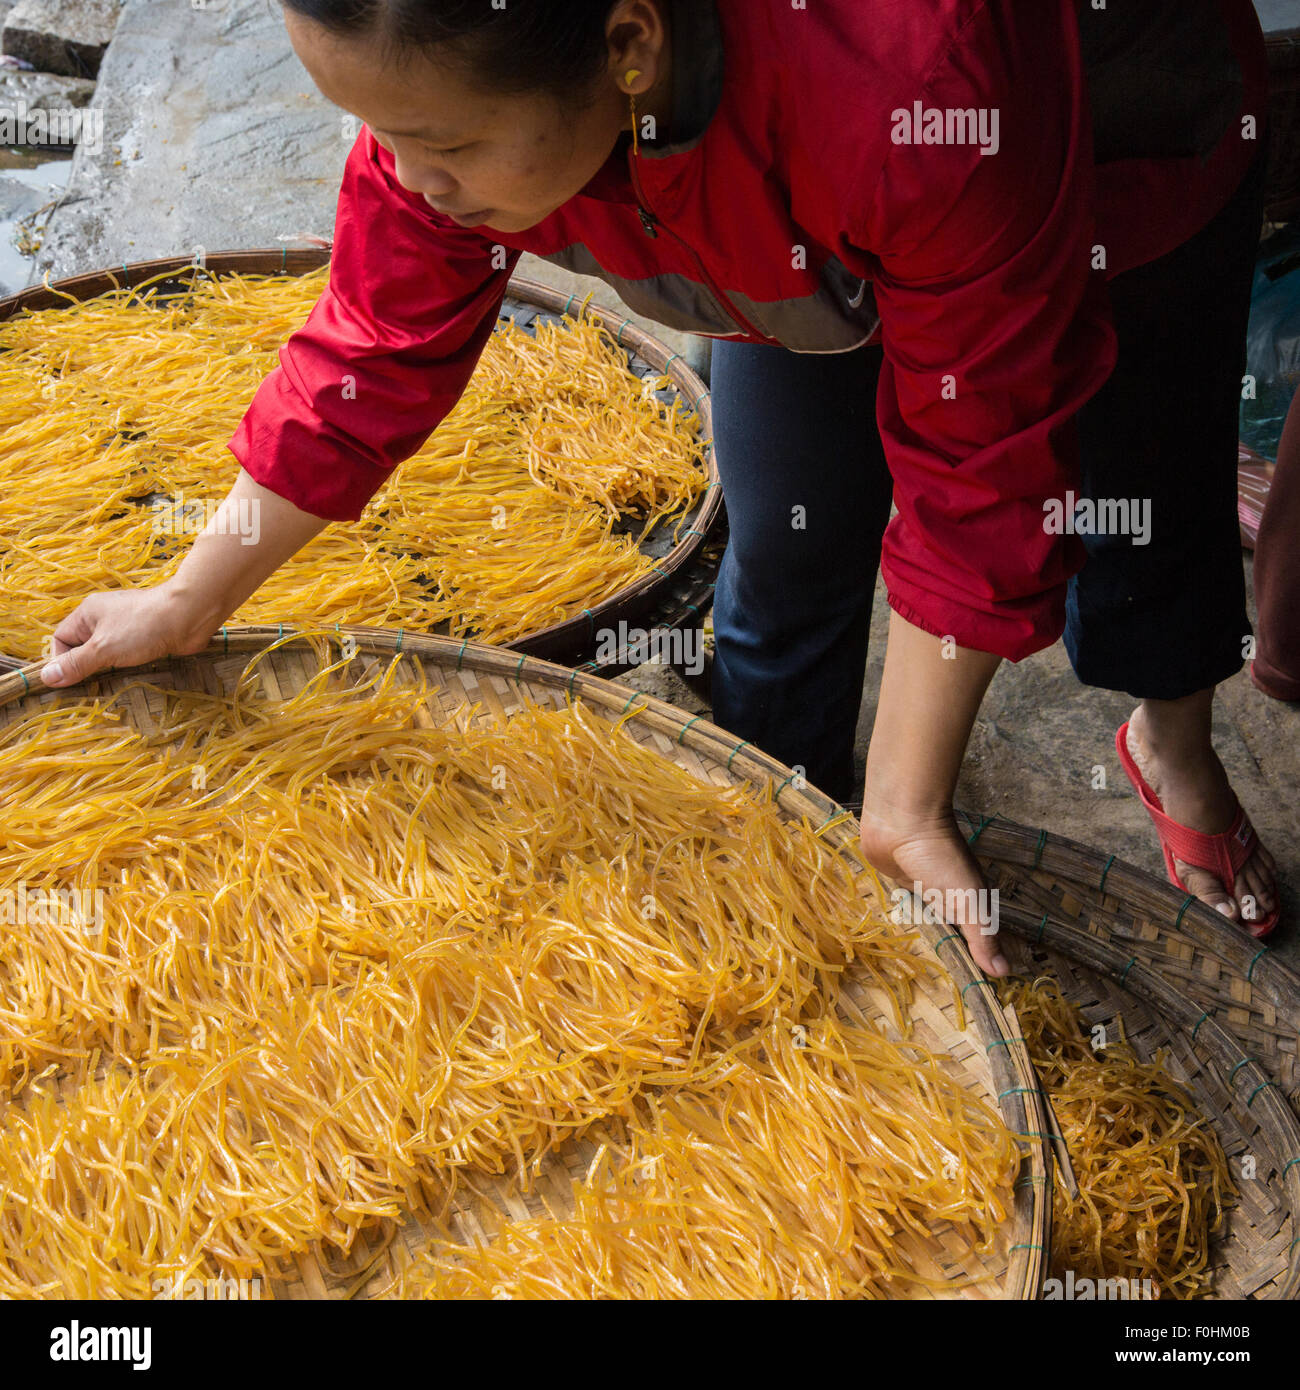 Woman in red blouse holding round tray of drying noodles at Central Food Market in Hoi An, Vietnam - Stock Image